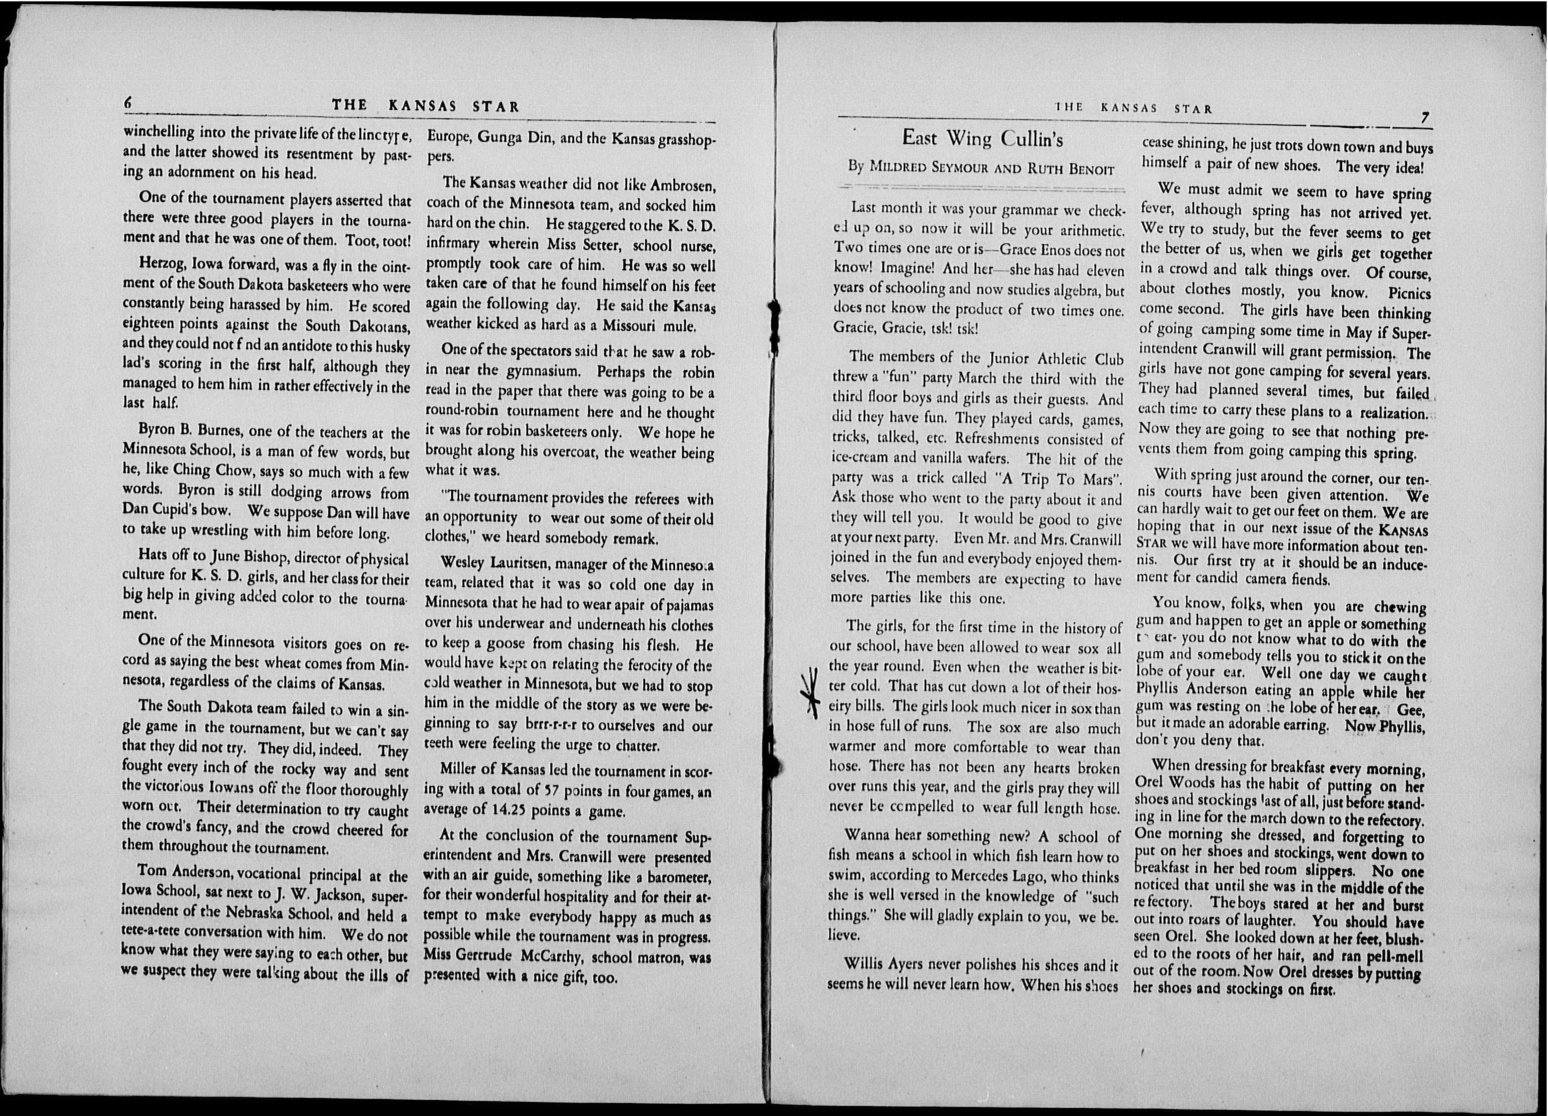 The Kansas Star, volume 52, number 6 - 6-7